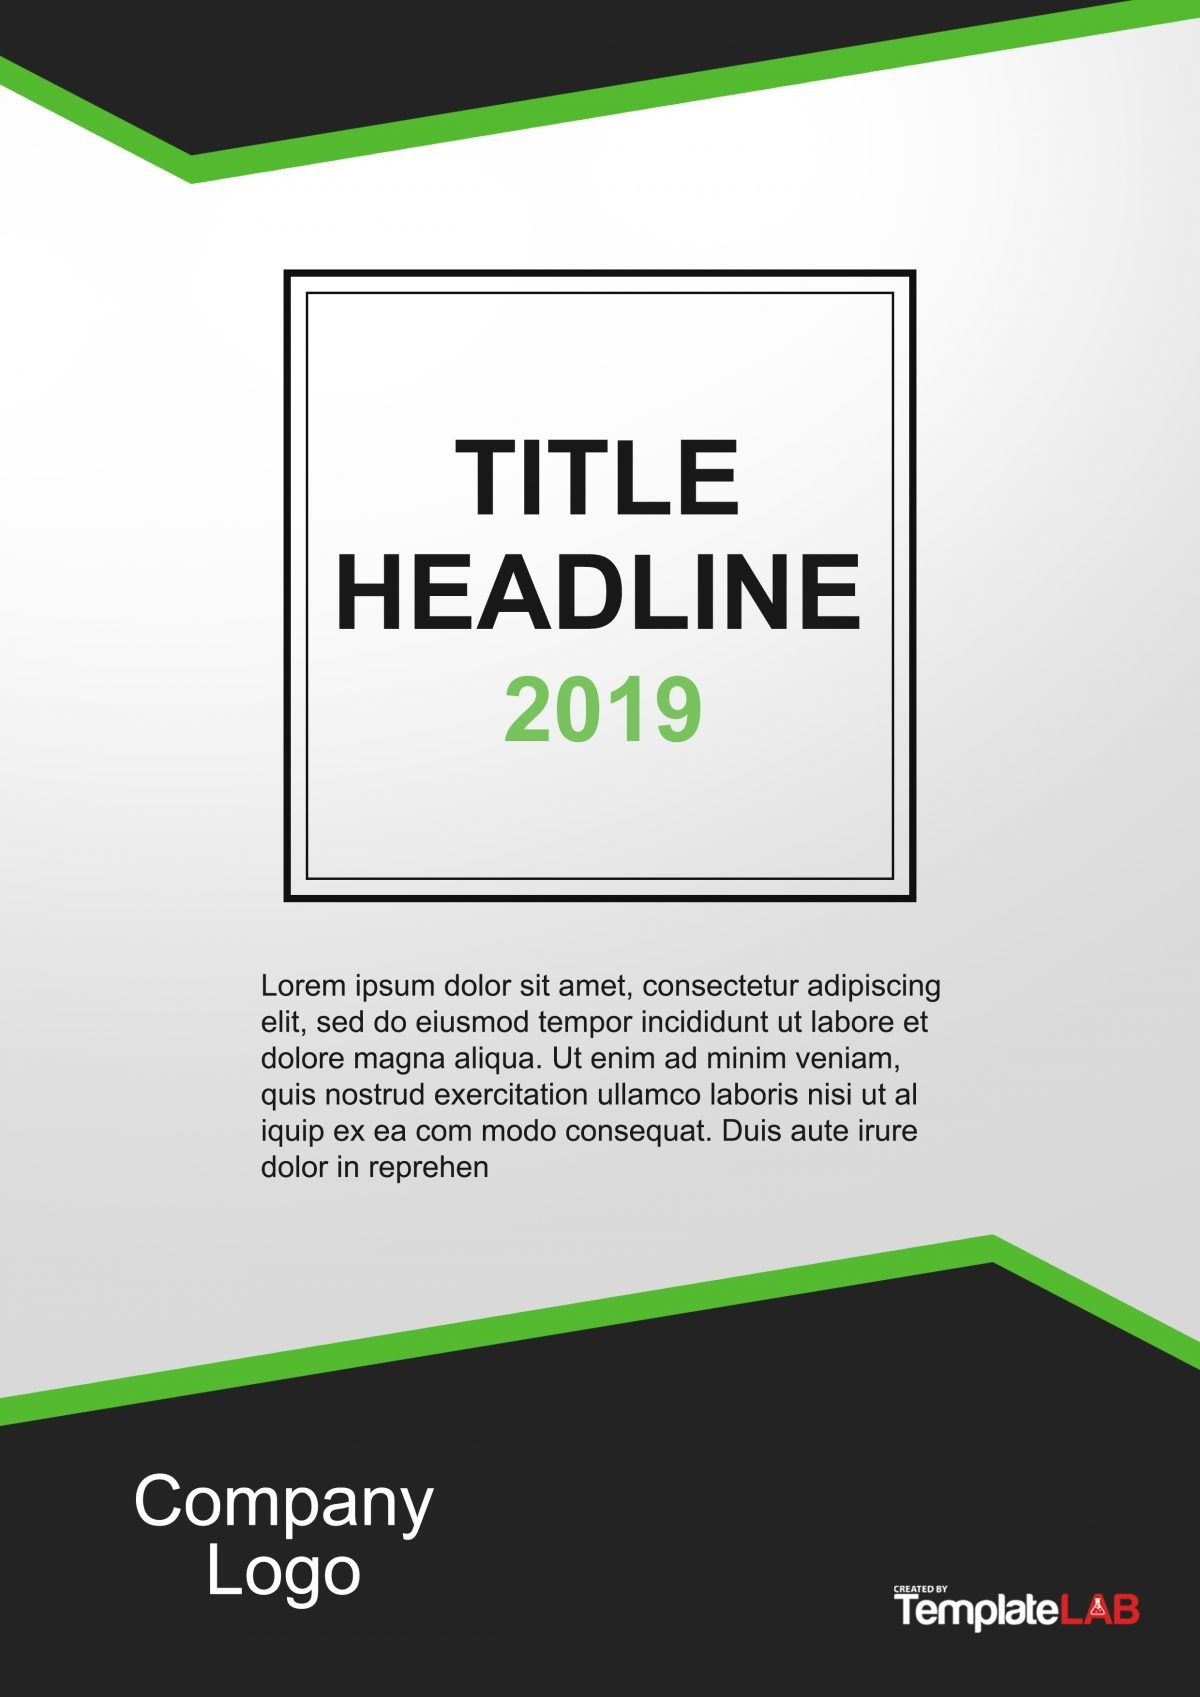 Free Cover Page Template 7 - TemplateLab